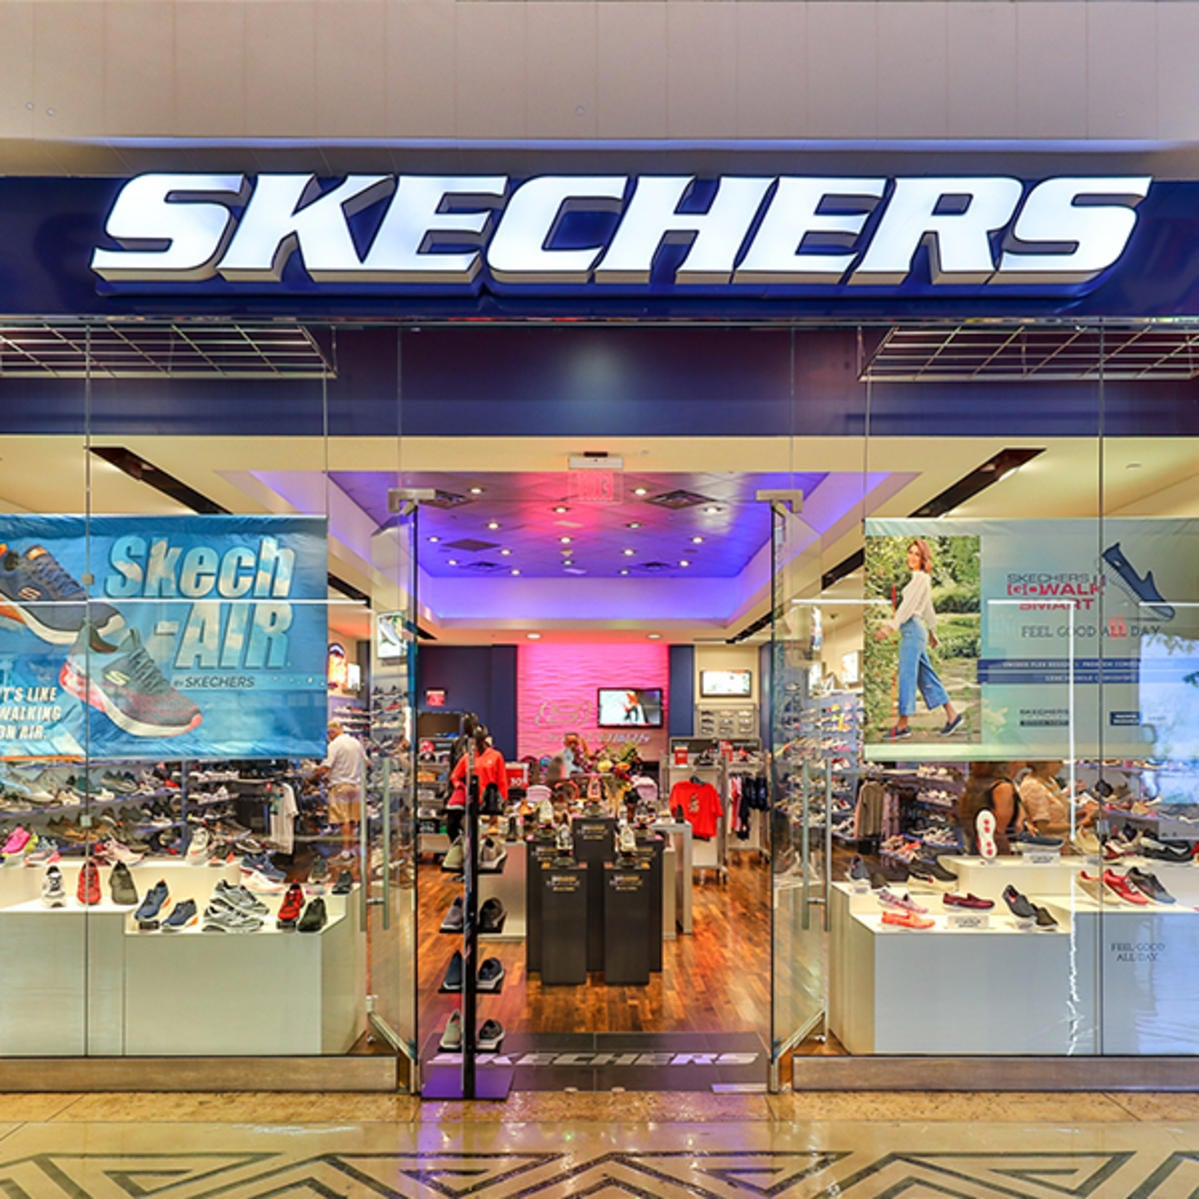 Penetrar Cereal avance  buy > skechers store hours today, Up to 73% OFF